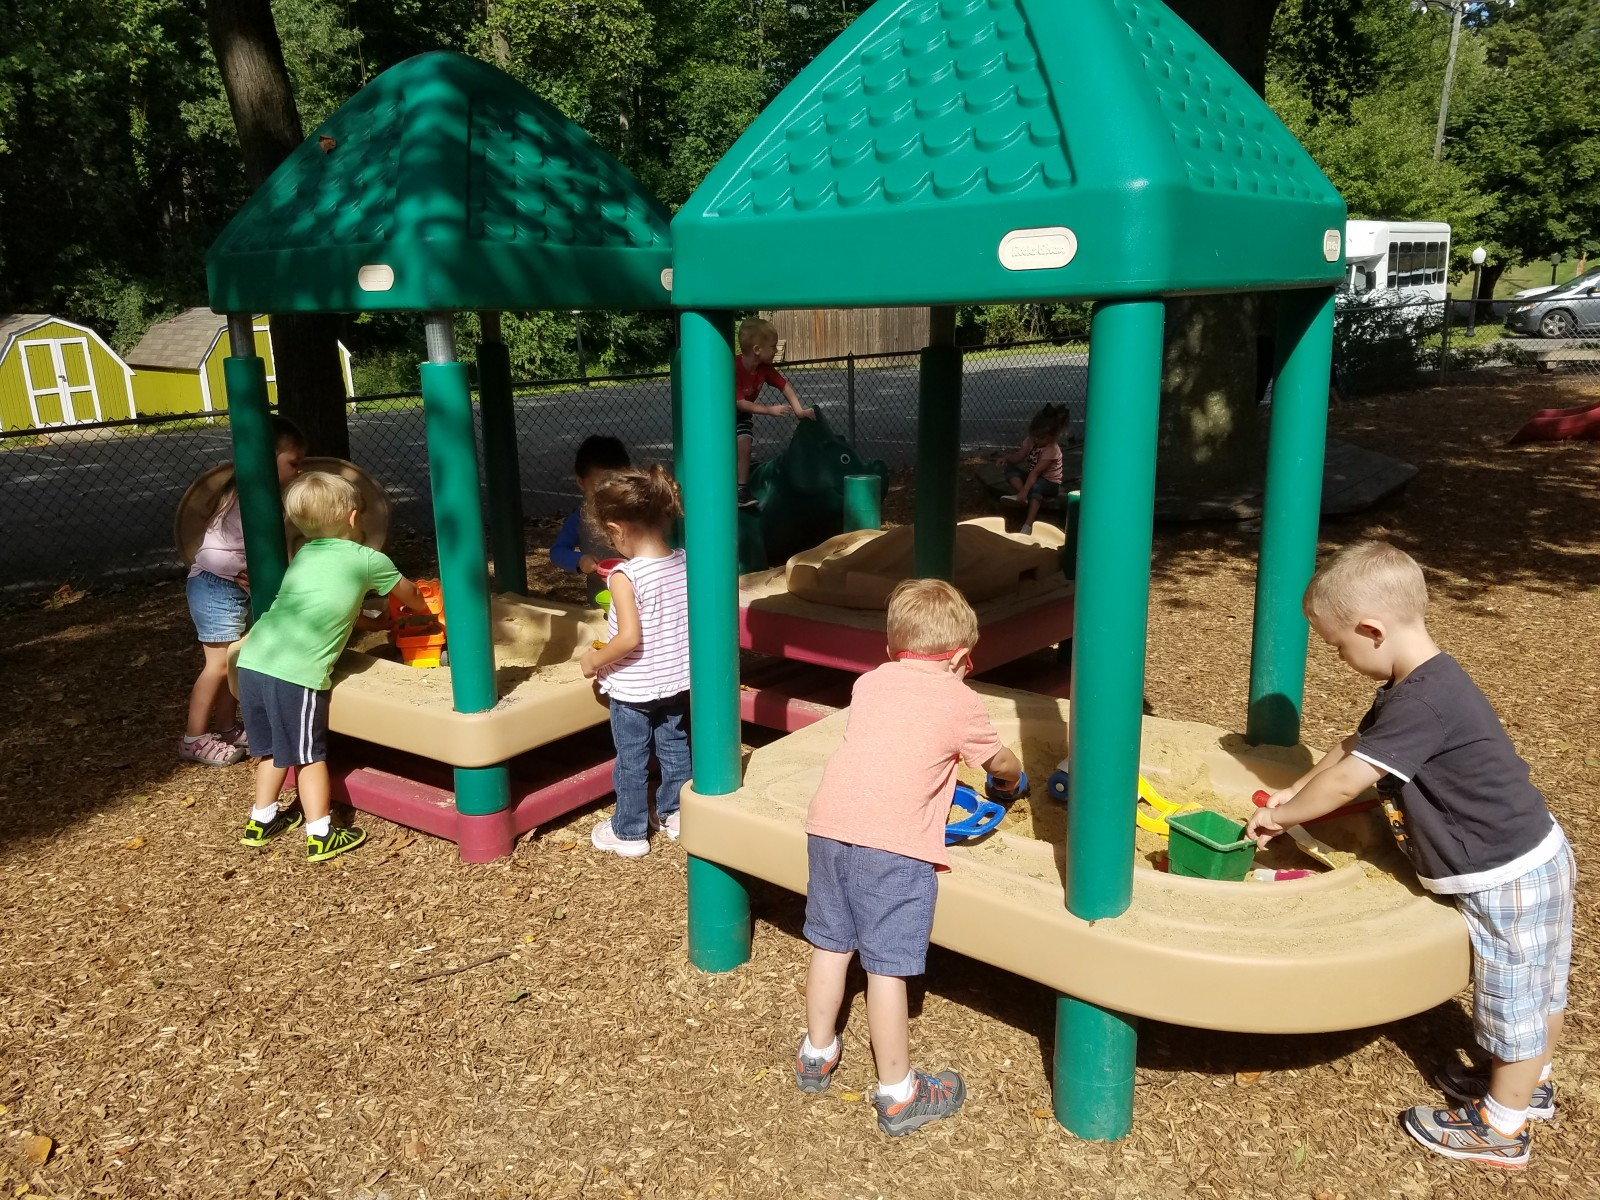 Playground grace presbyterian church for Outdoor gross motor activities for preschoolers